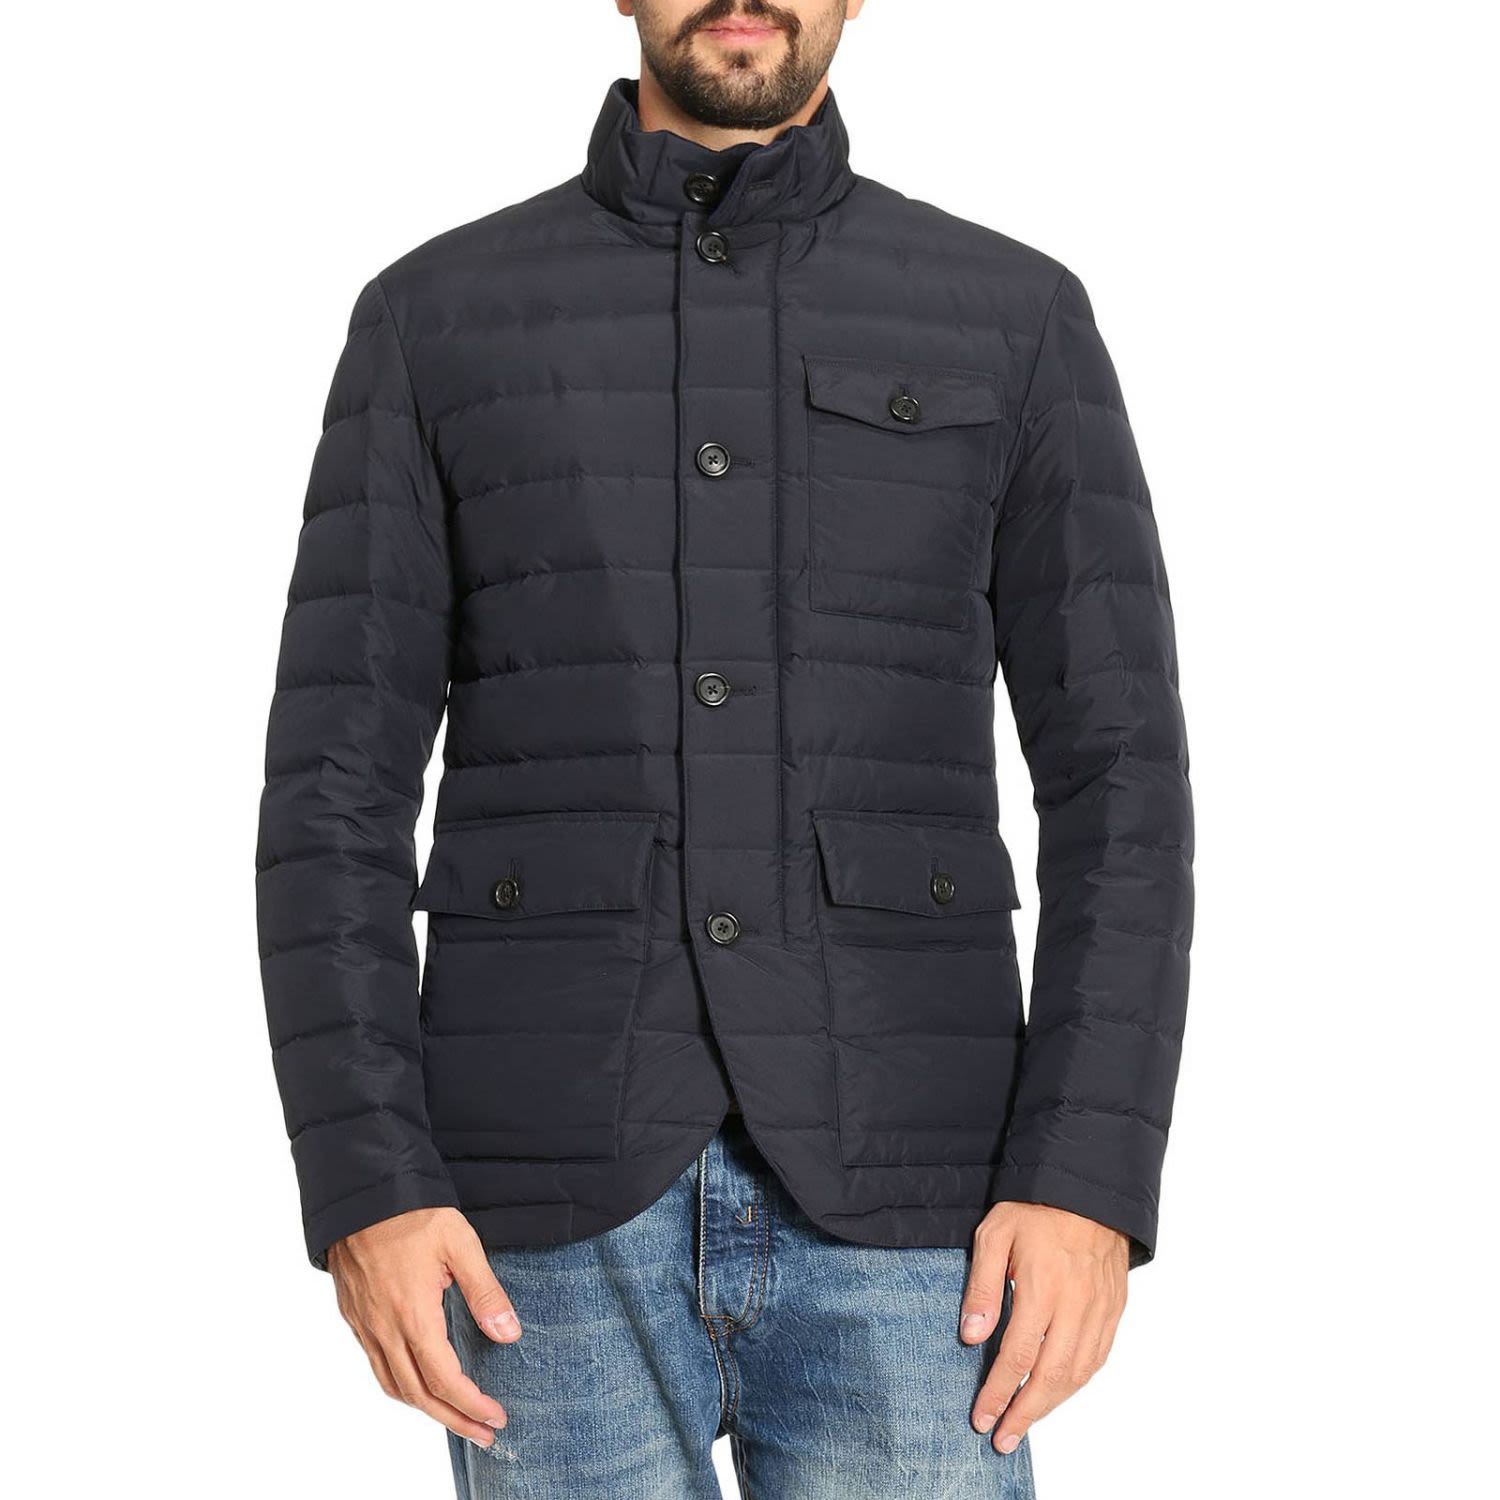 Jacket Jacket Men Z Zegna